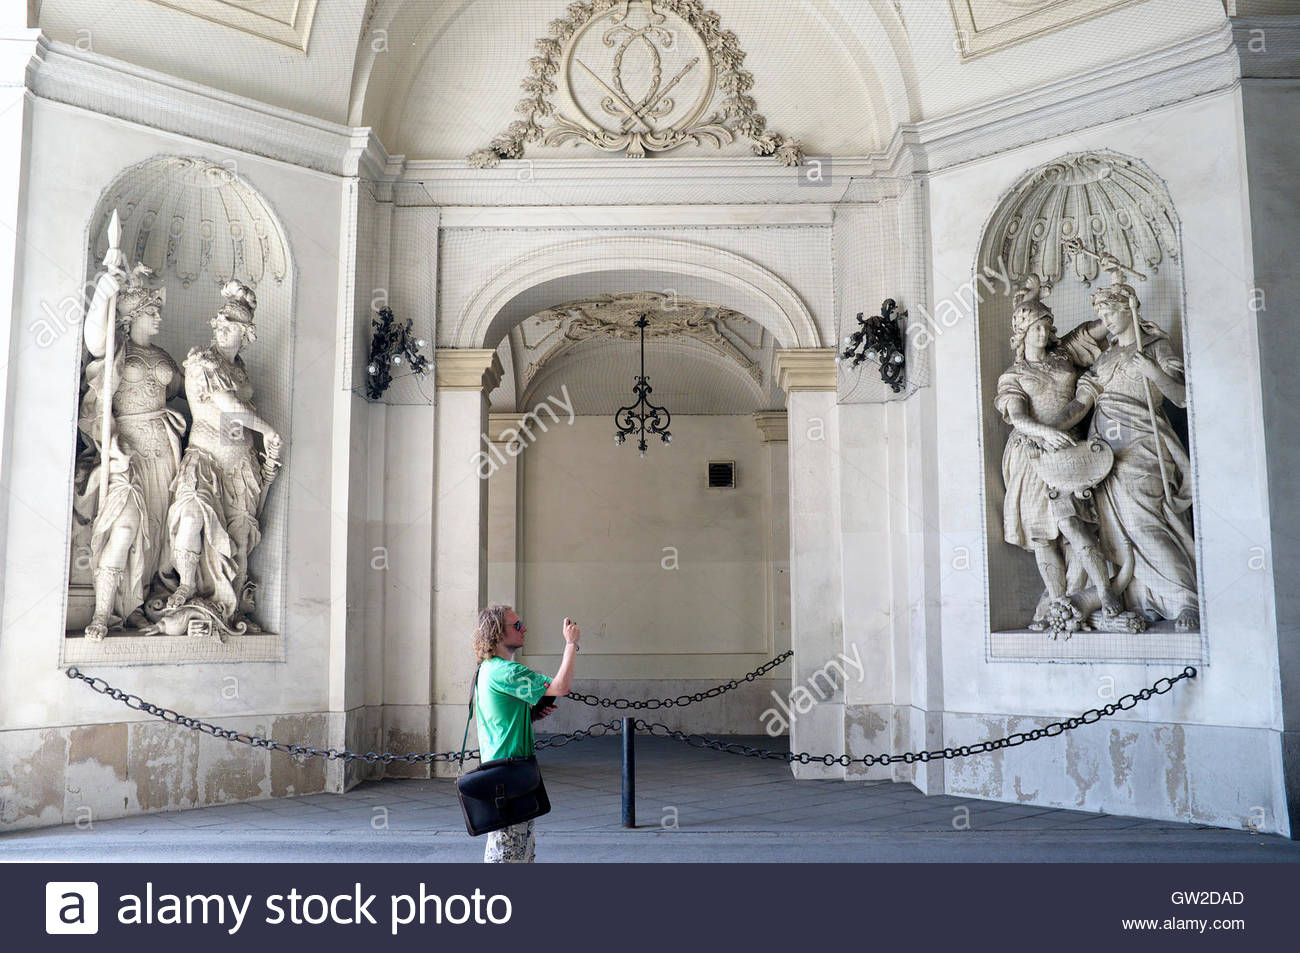 A tourist taking a photo at the Vienna Imperial Palace (Hofburg Palace). Vienna, Austria. - Stock Image